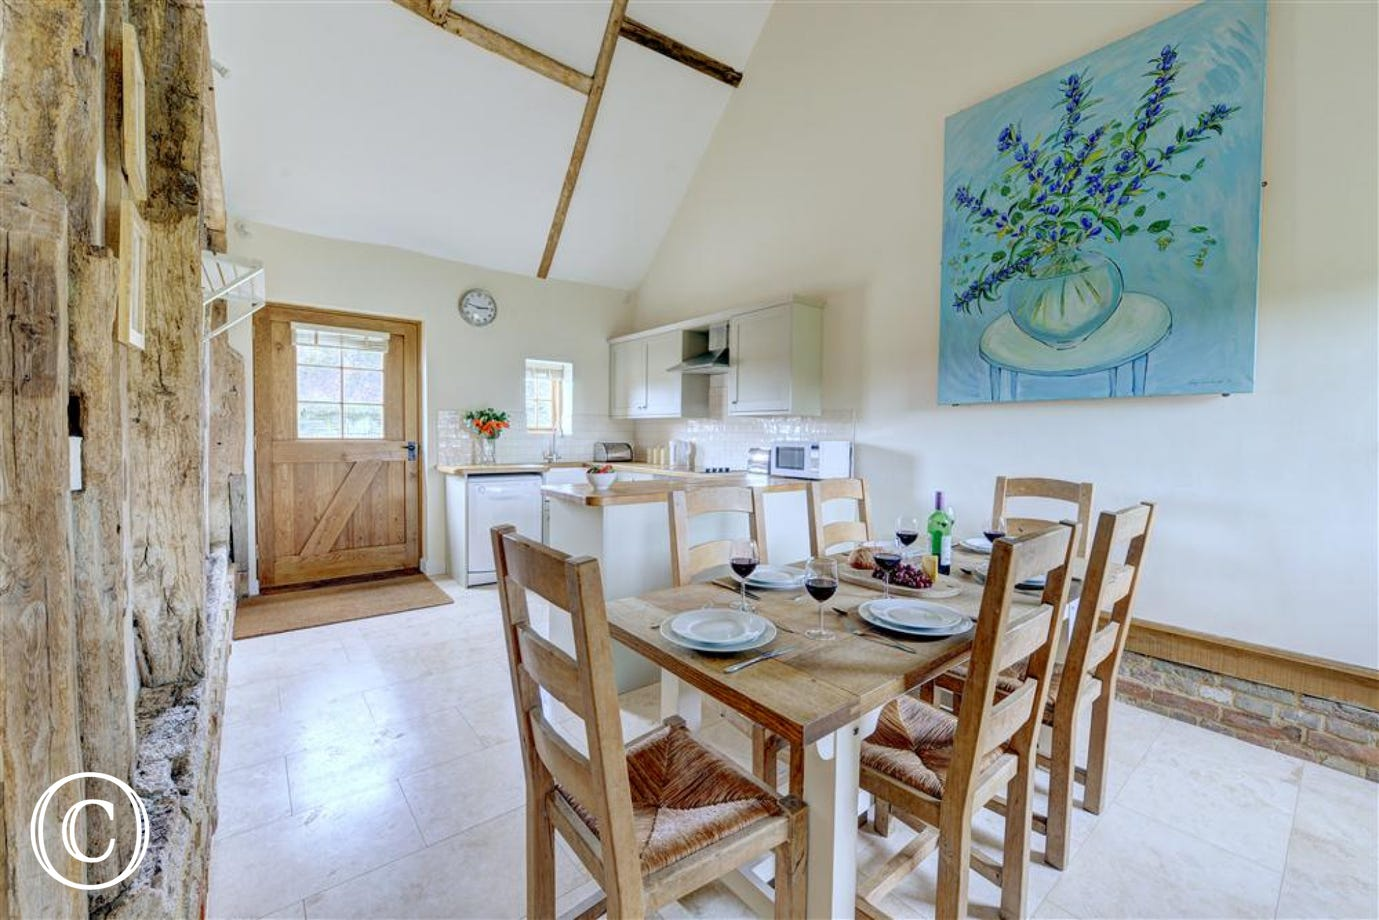 Spacious kitchen and dining area with superb travertine marble floor